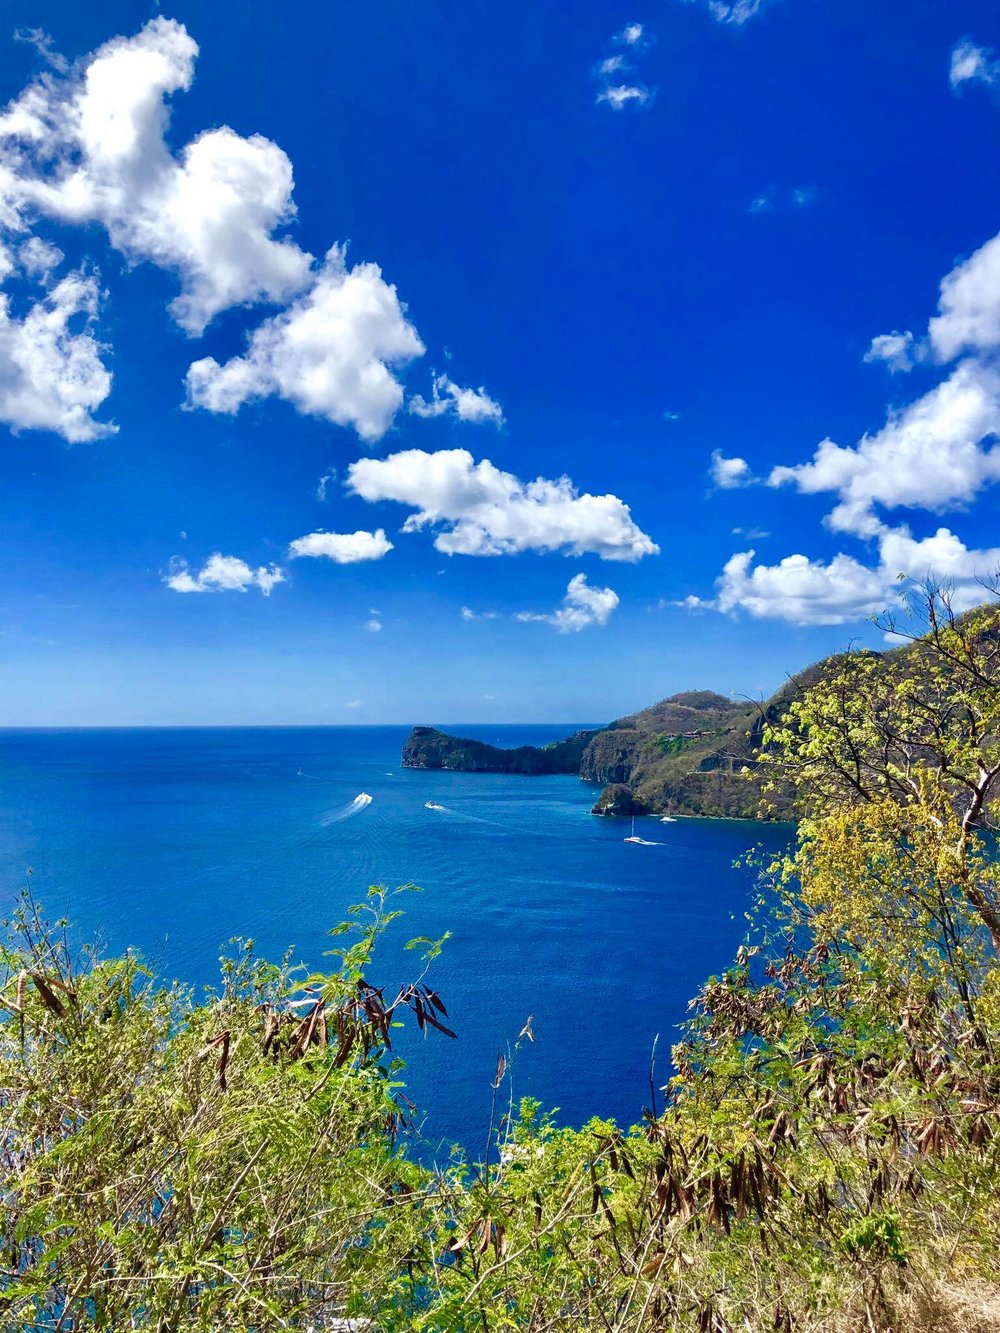 Kach Solo Travels in 2019 Beautiful St Lucia21.jpg